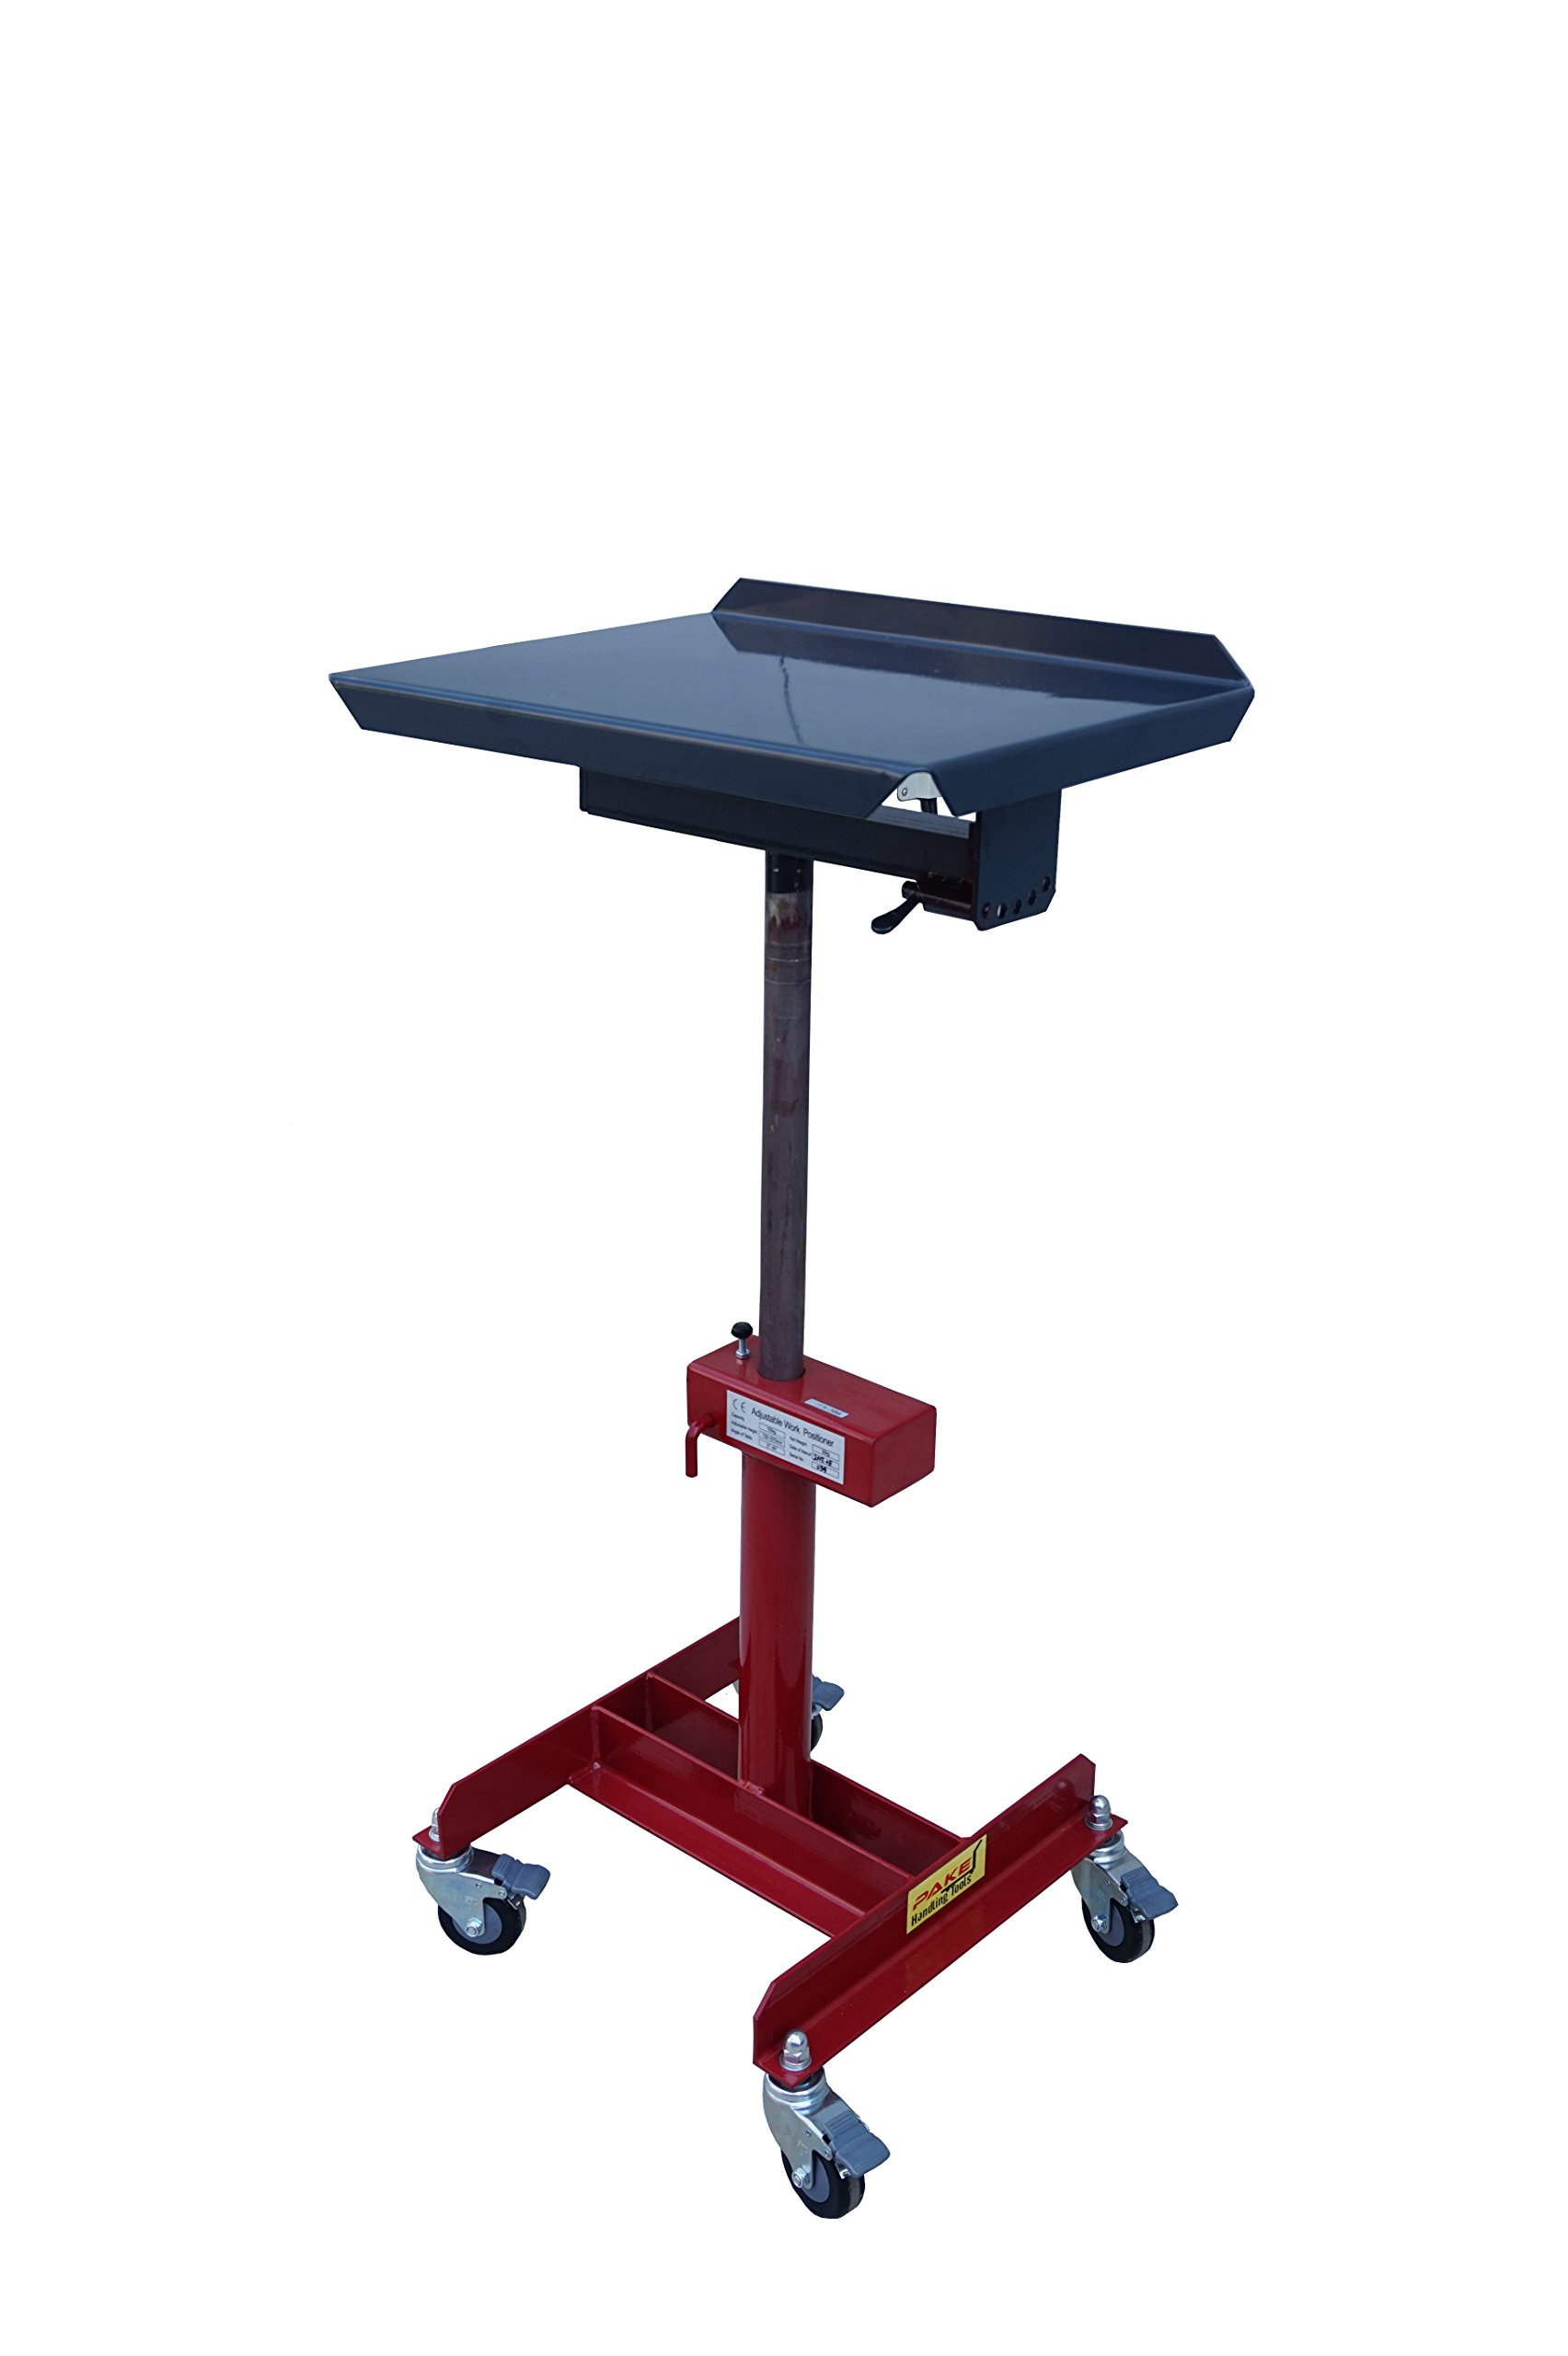 Pake Handling Tools - Tilting Work Table, 20x16'', 28 to 42'' Height, 330 lb. Load Capacity, 40 Degrees Tilting Angle